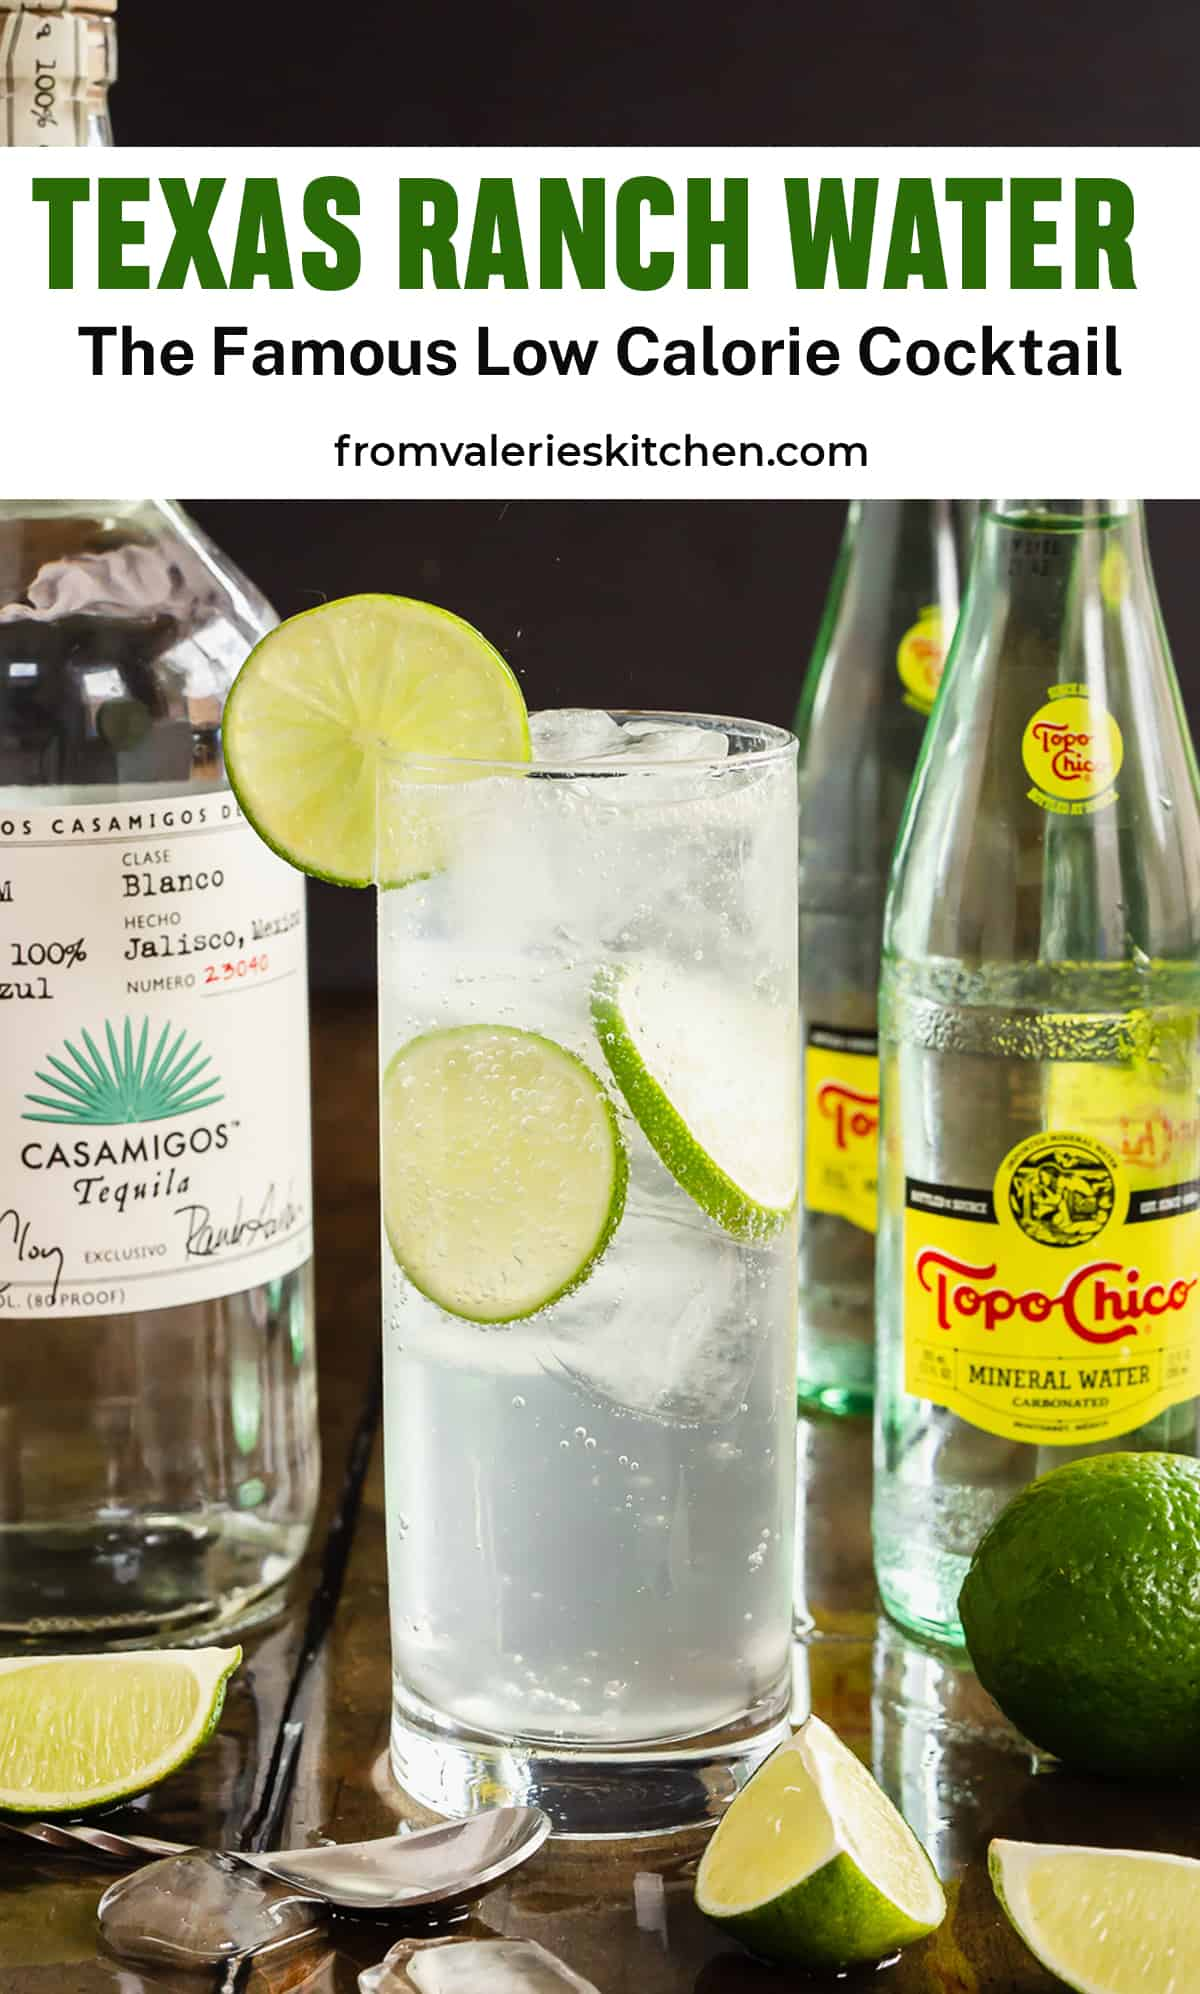 A Ranch Water cocktail next to Casamigos Tequila and Topo Chico with text overlay.